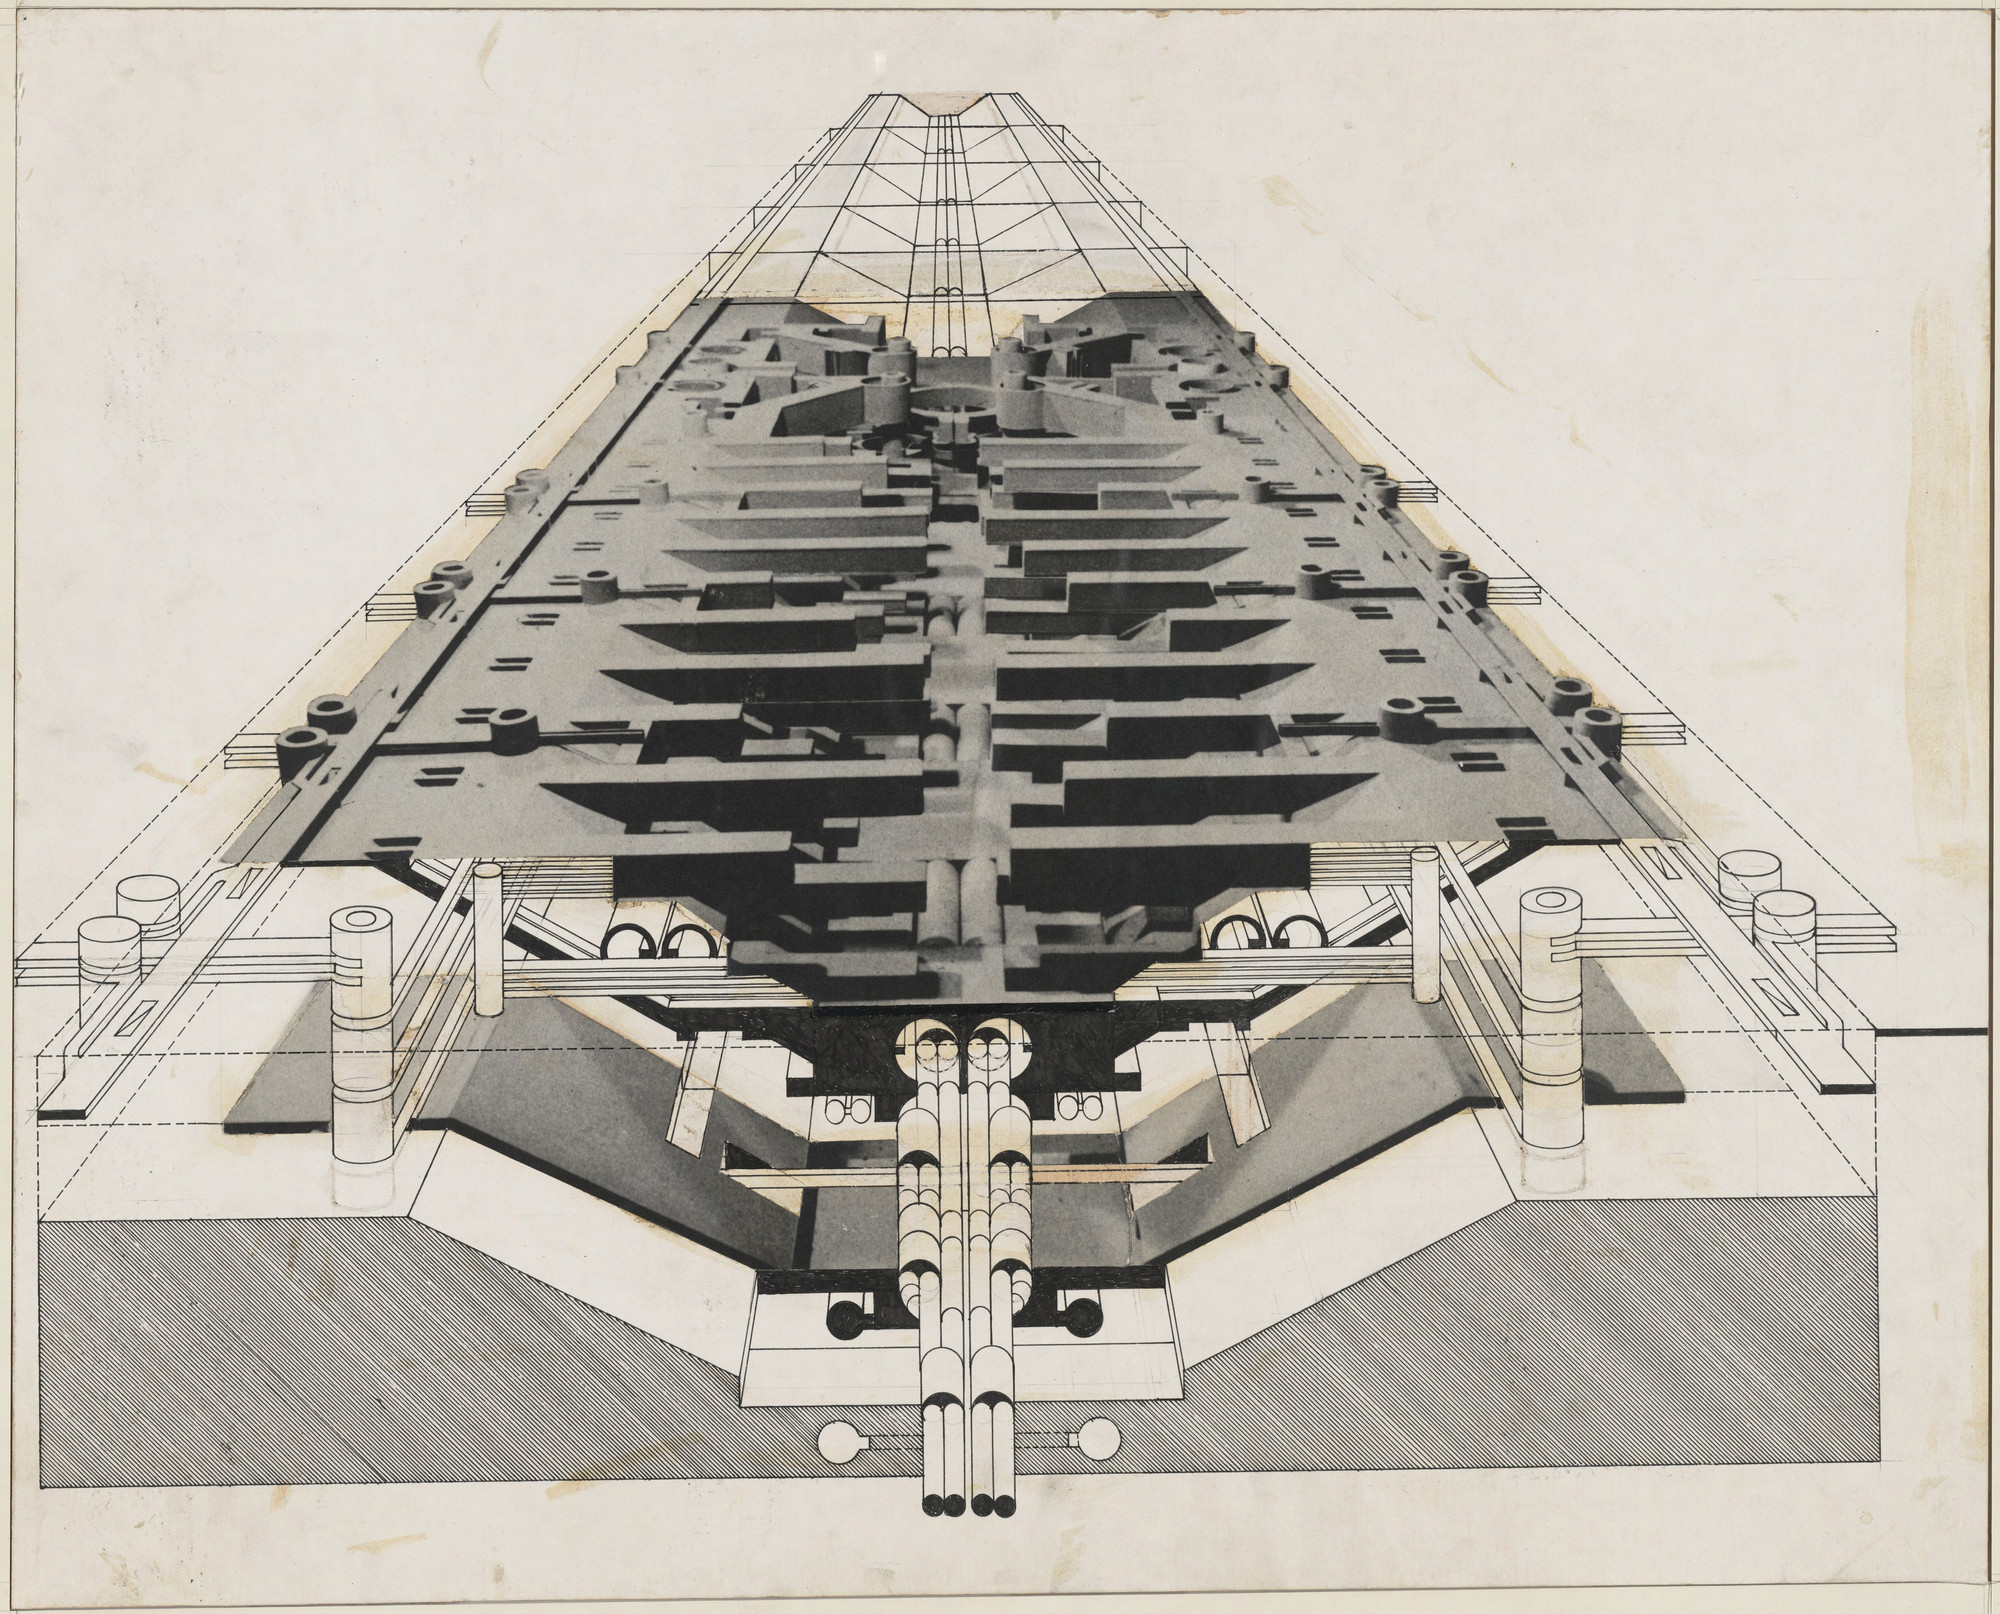 Raimund Abraham. Universal City, project, Sectional perspective. 1966